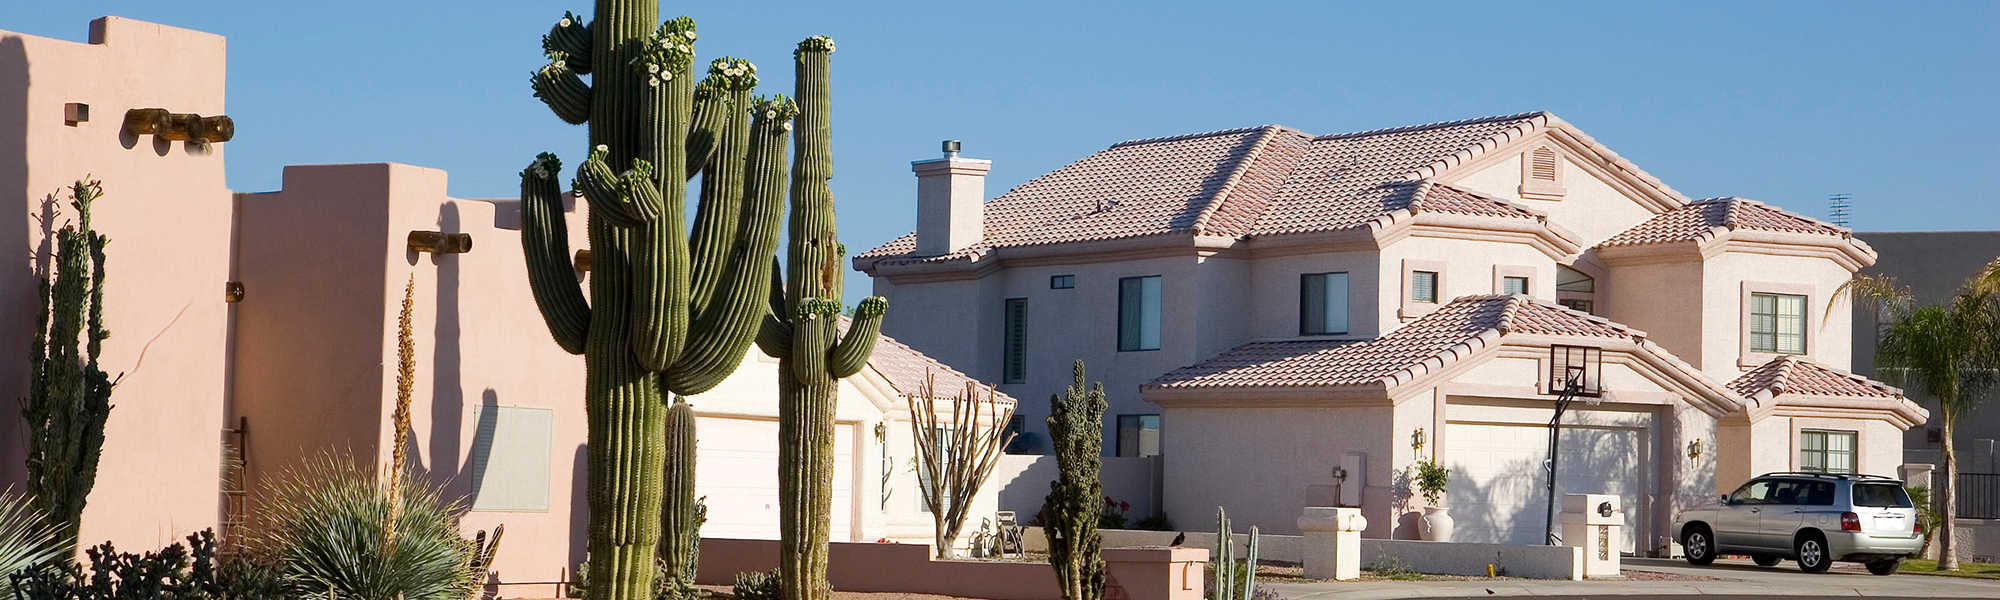 A home in the Southwest with cacti